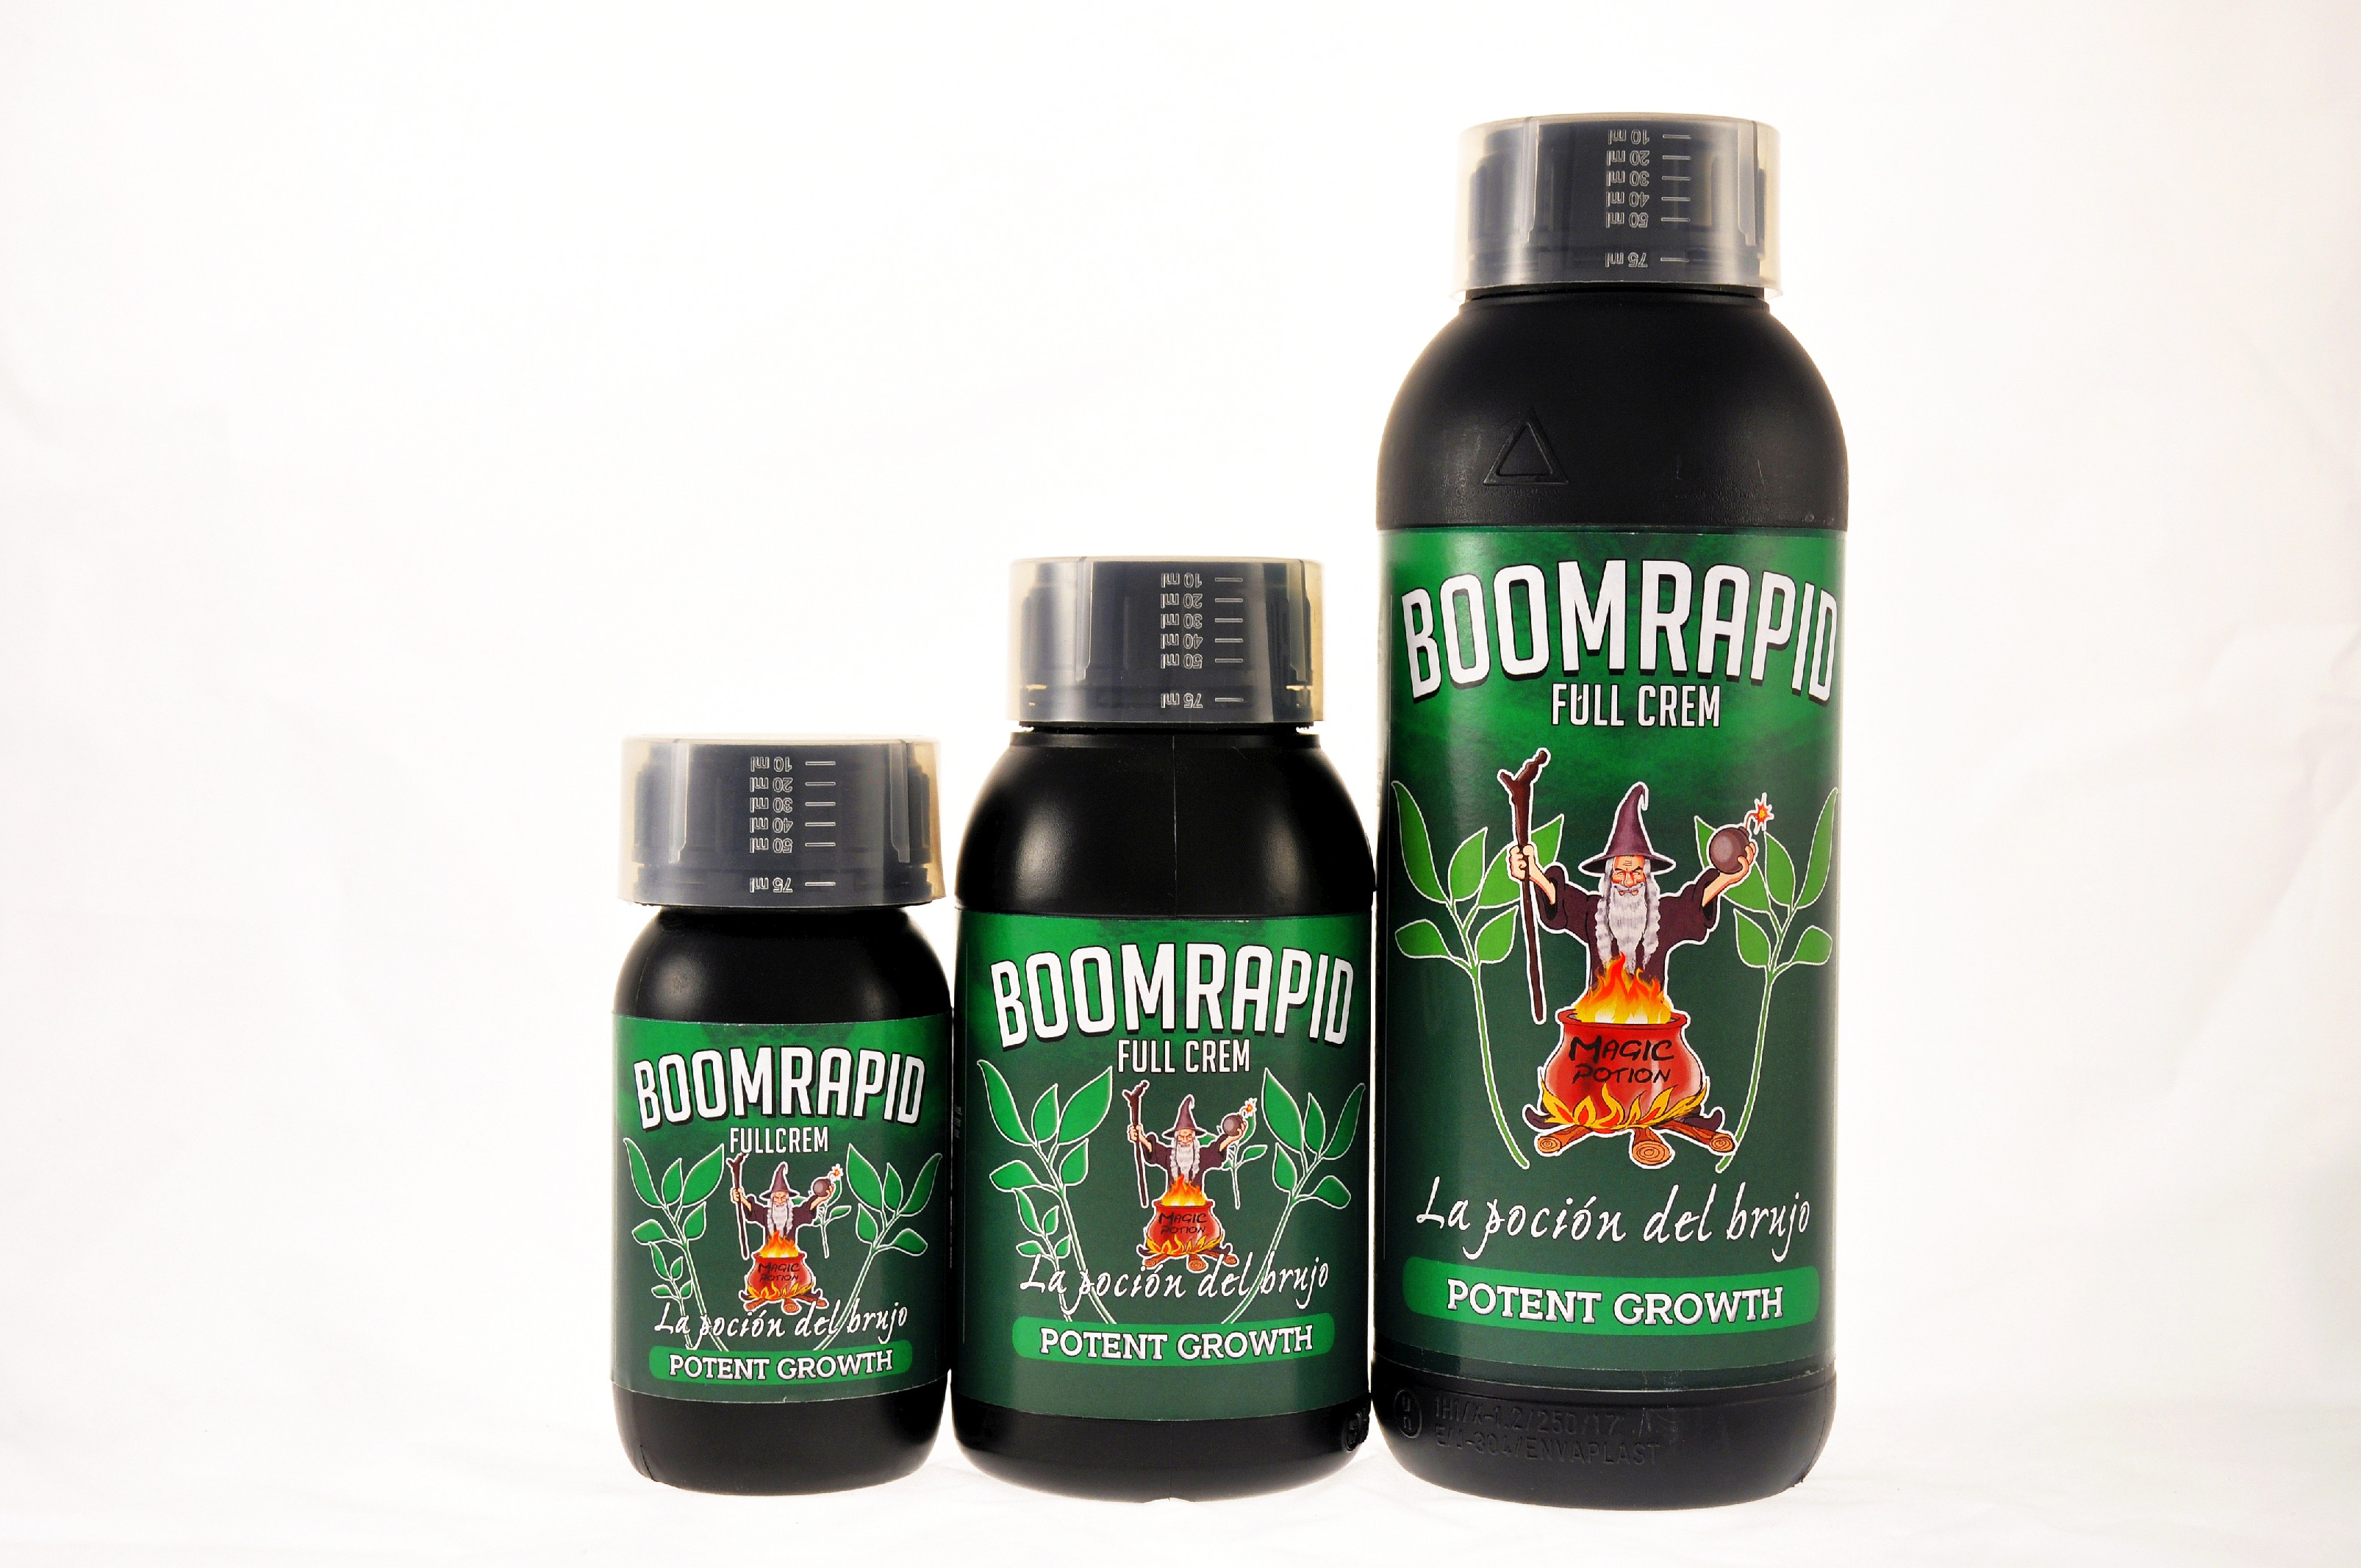 CANNABOOM - Boomrapid Fullcrem 5000ml